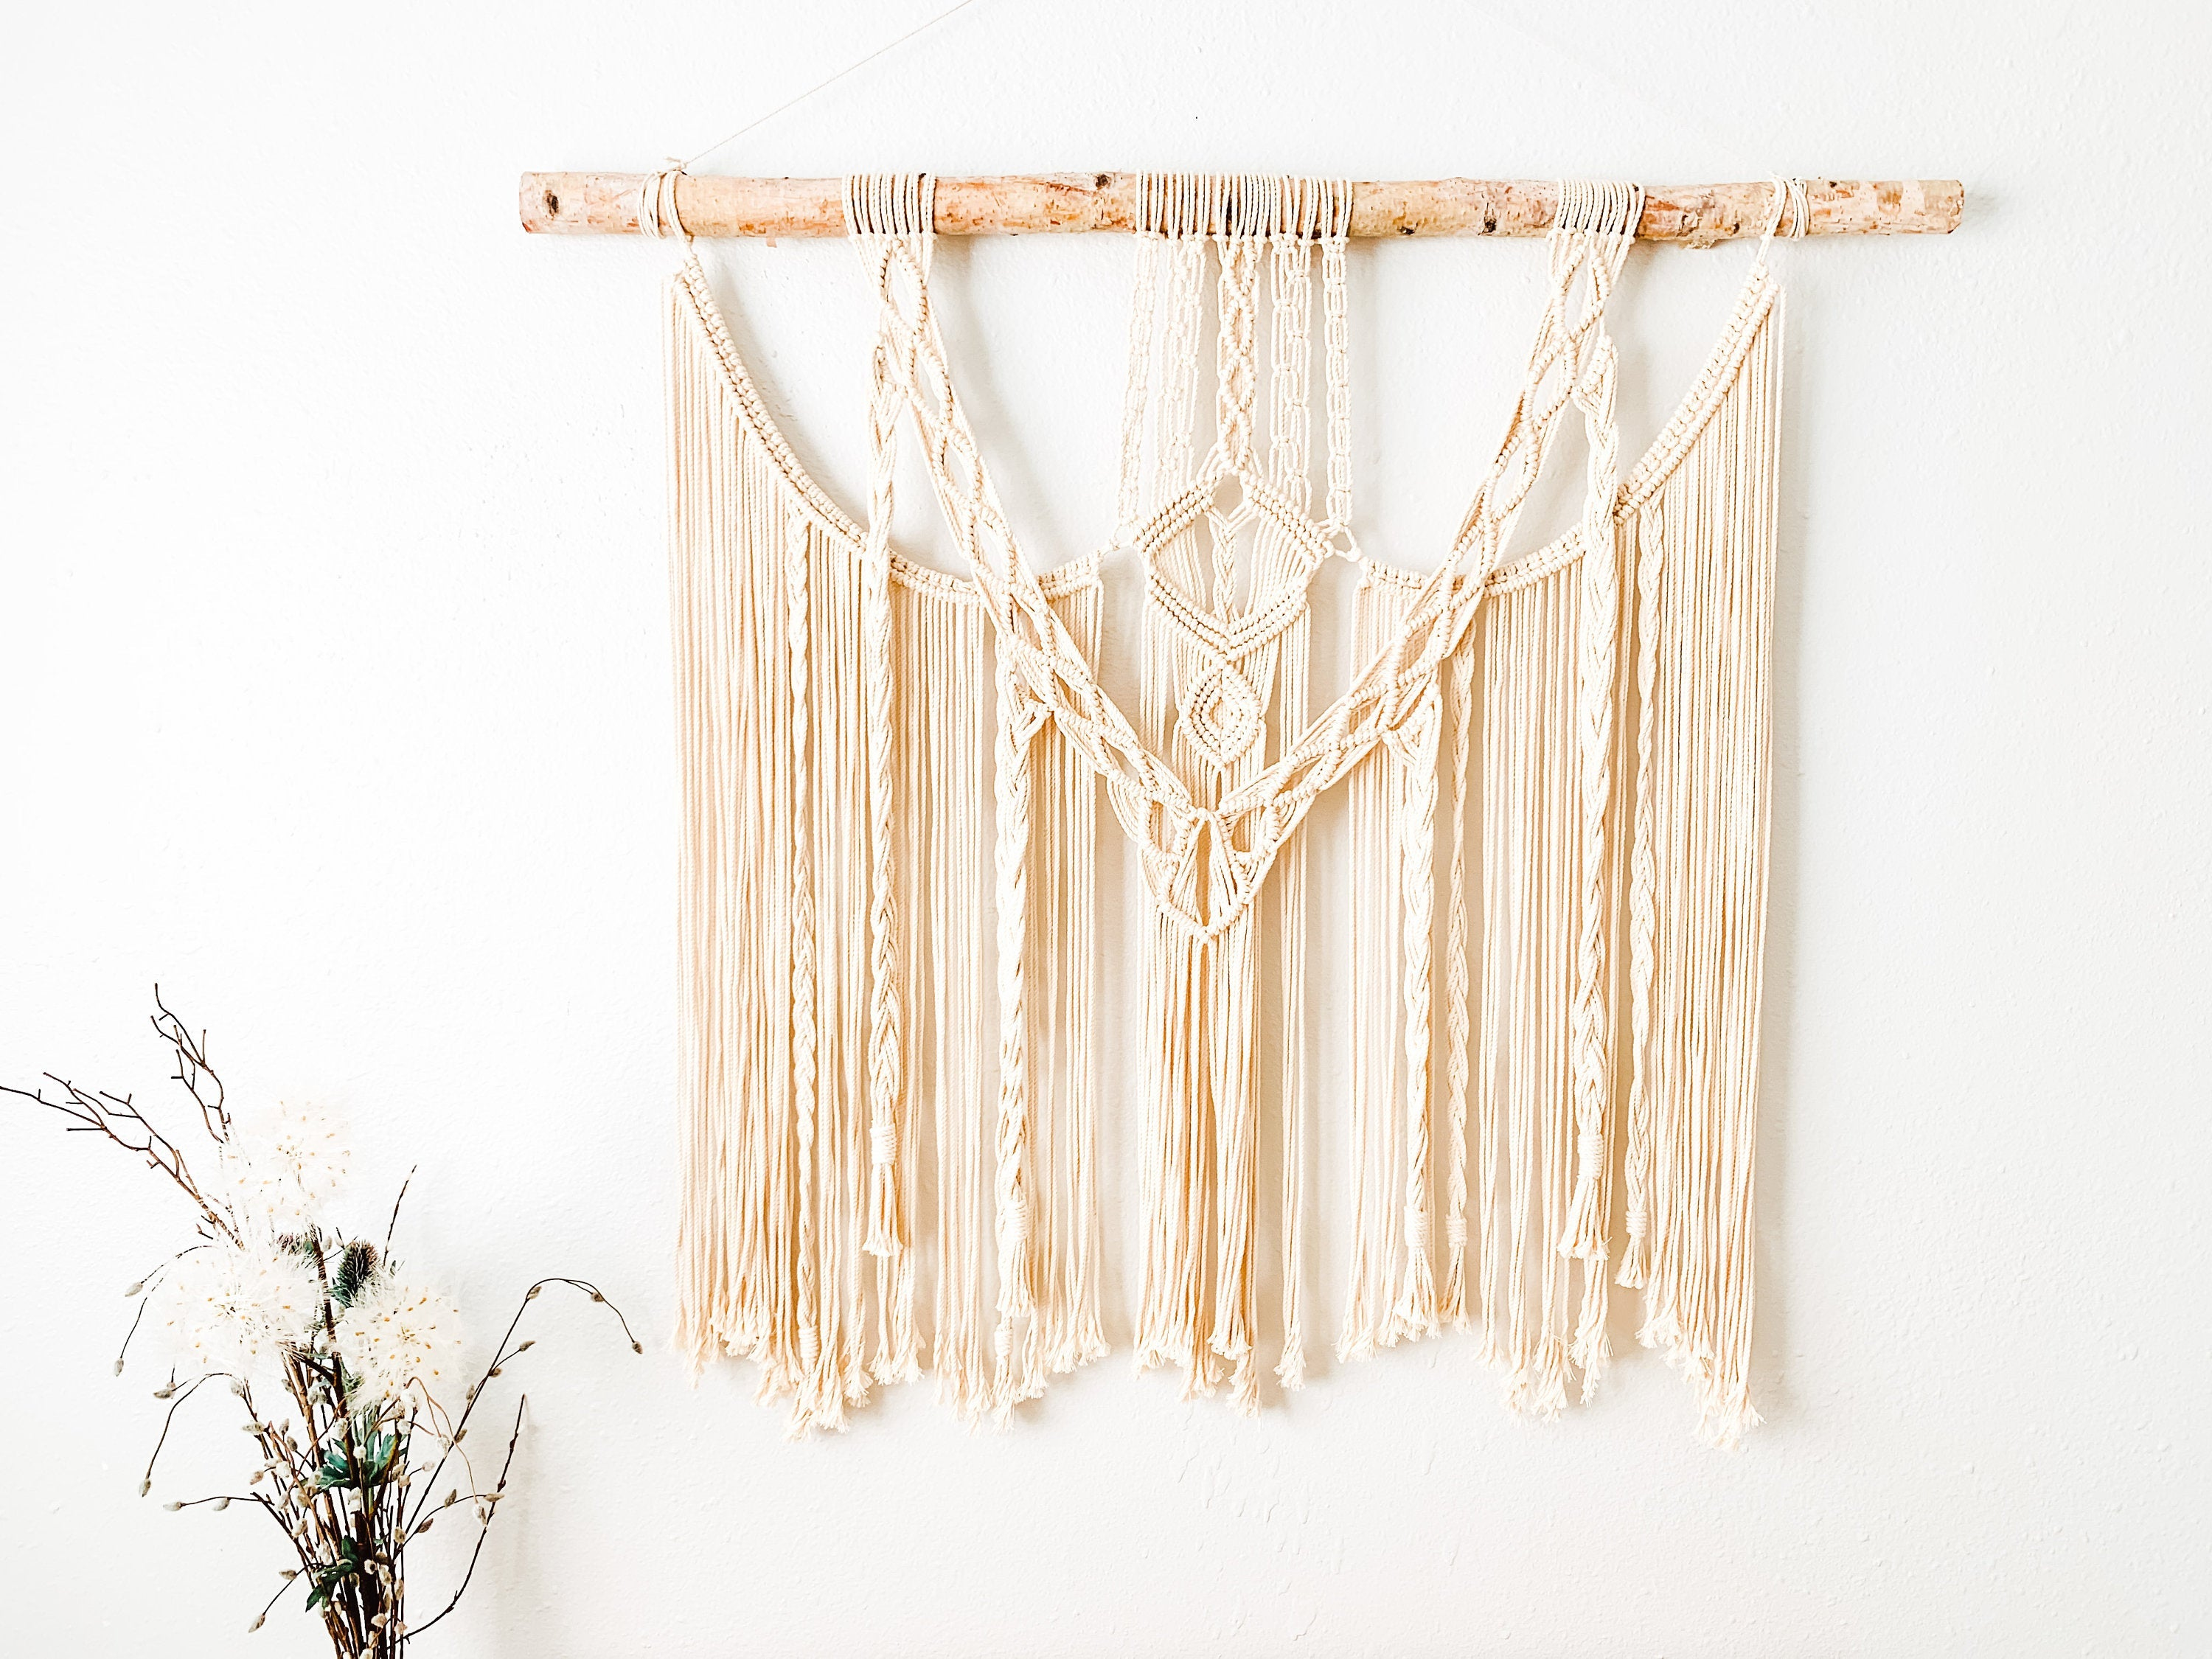 Extra Large Driftwood Macrame Wall Hanging, Boho Decor, Fiber Art, Bohemian Macrame Wall Art, Large Simple Macrame, Holiday Gift